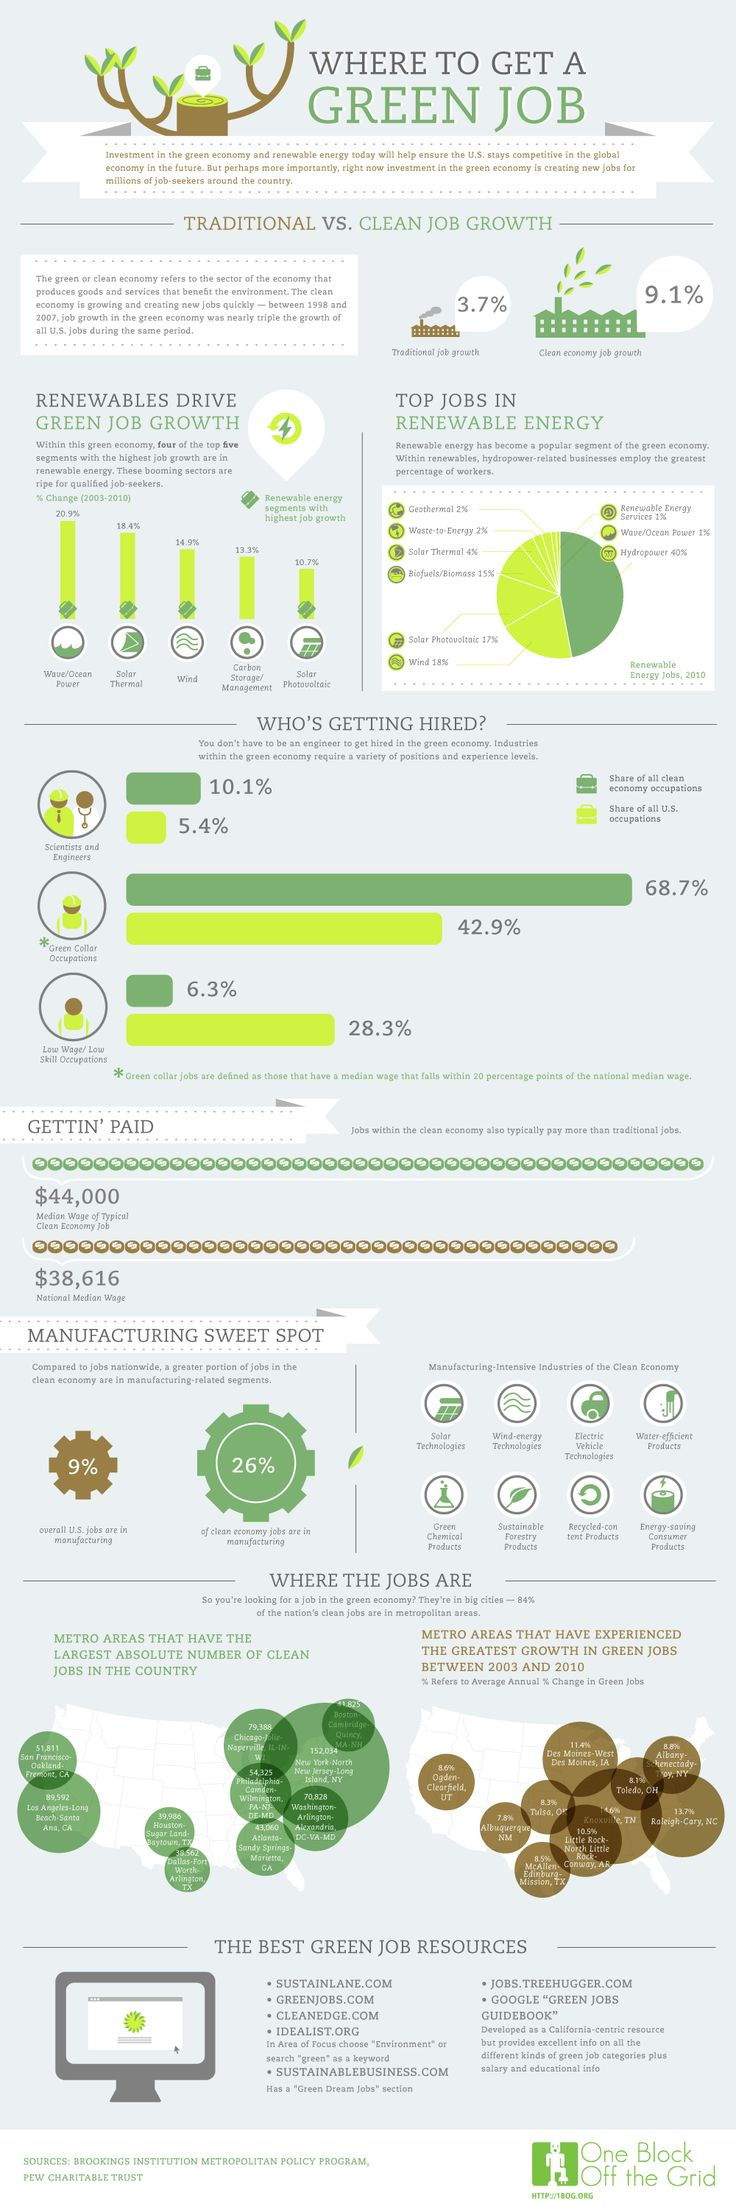 Where to Get a Green Job #infographic